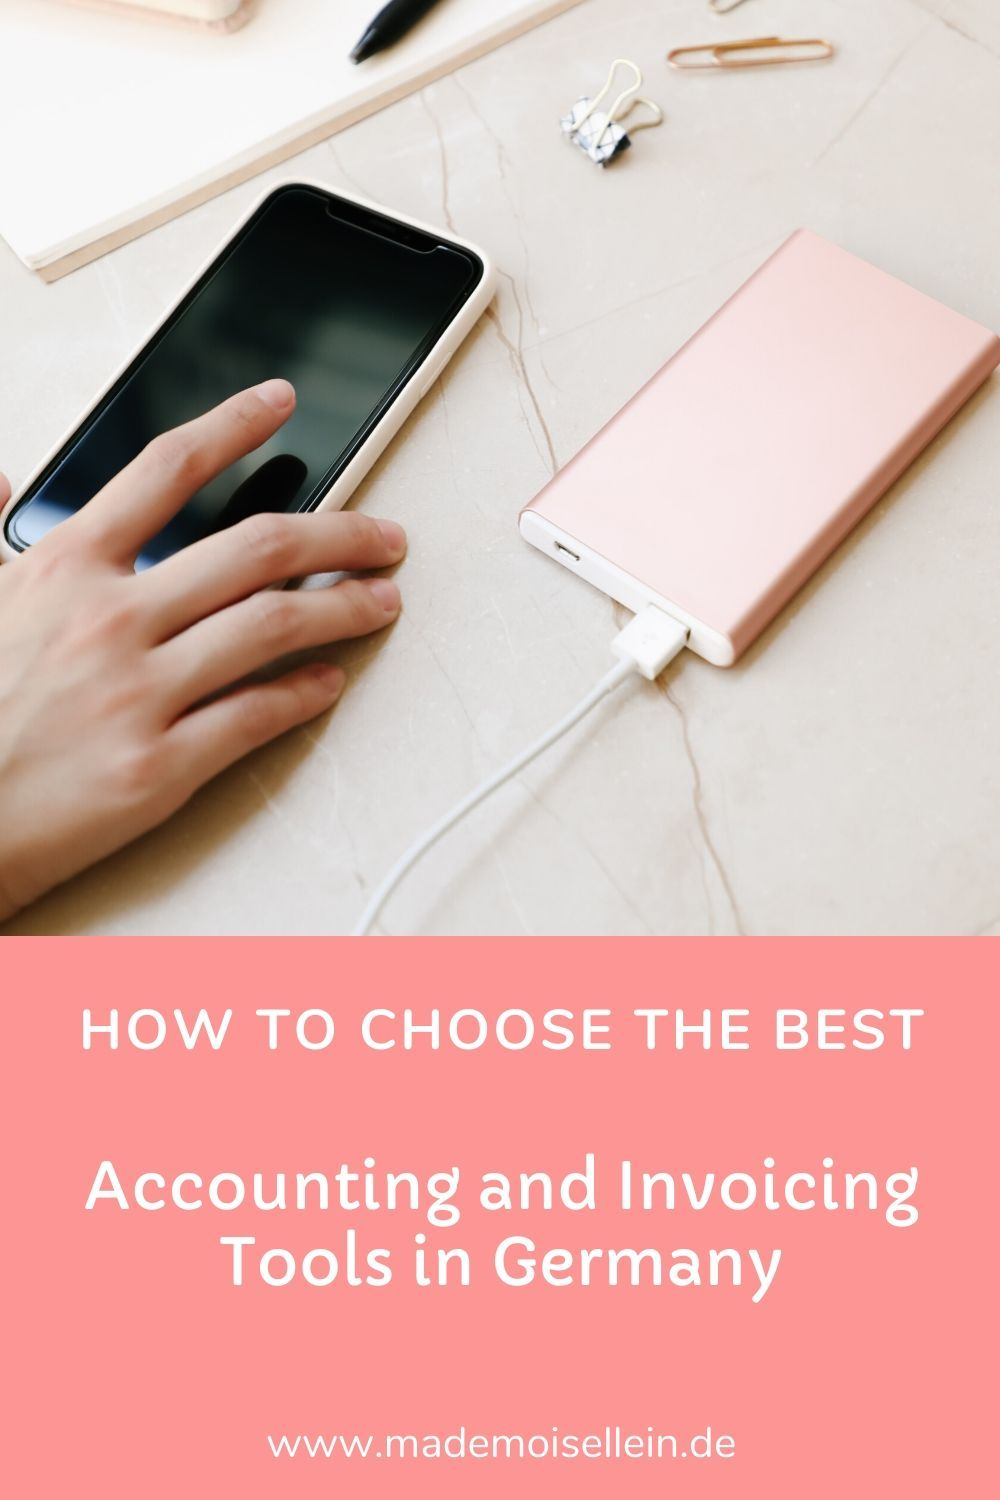 Top Invoicing Tools for Freelancers in Germany